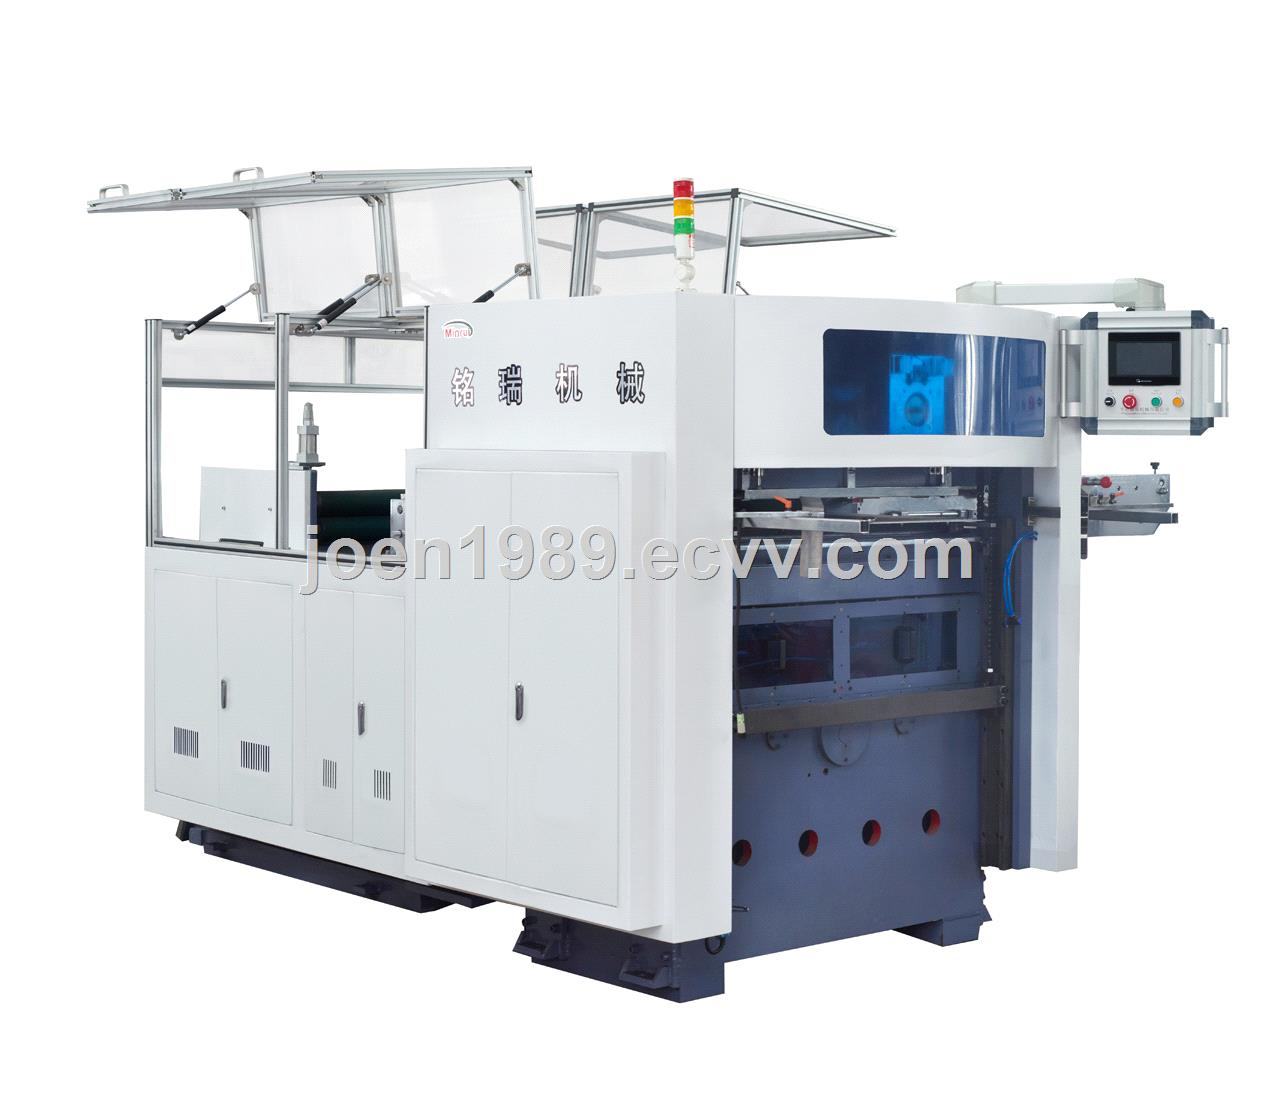 Full automatic roll paper cup wall die cutting machine MR930A